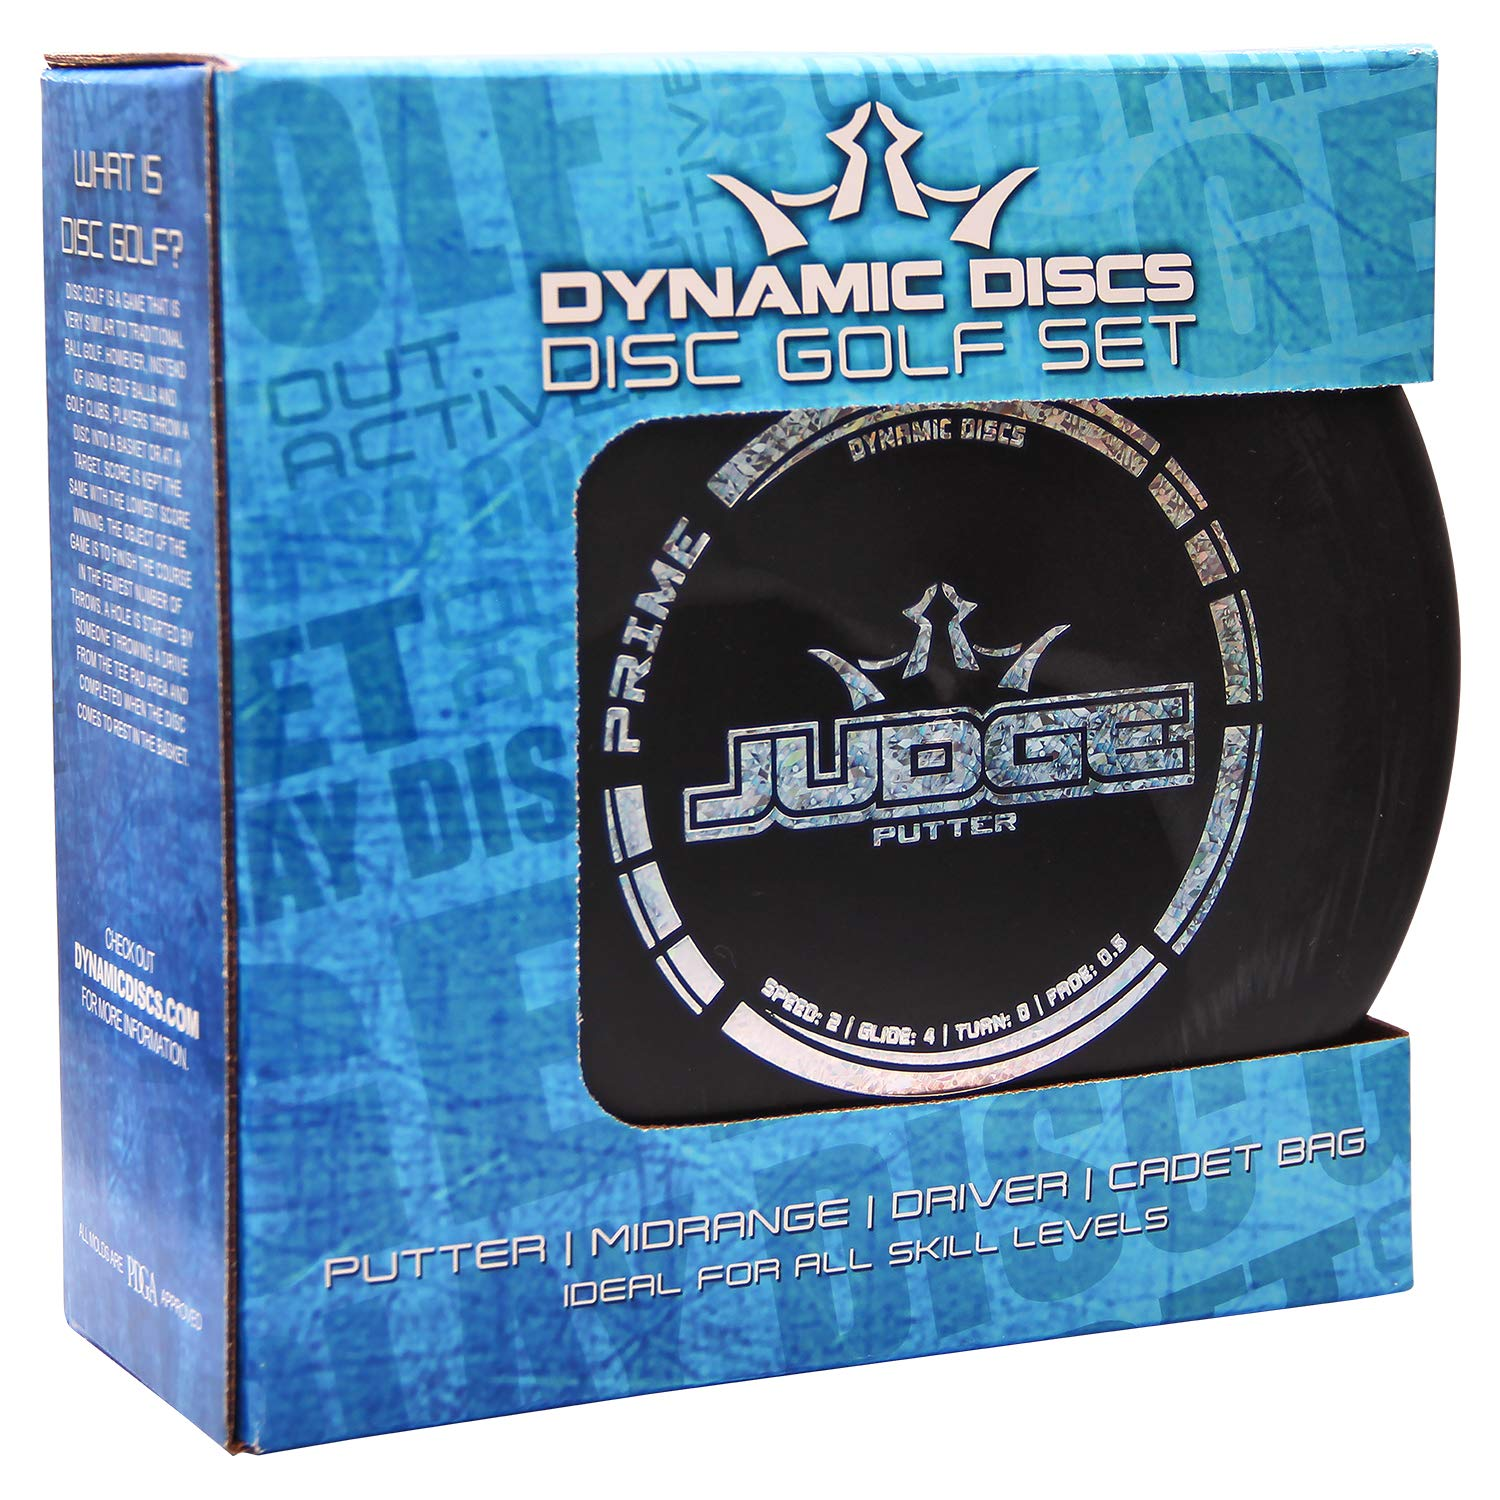 Dynamic Discs 3 Disc Starter Set with Cadet Disc Carrying Bag by D·D DYNAMIC DISCS